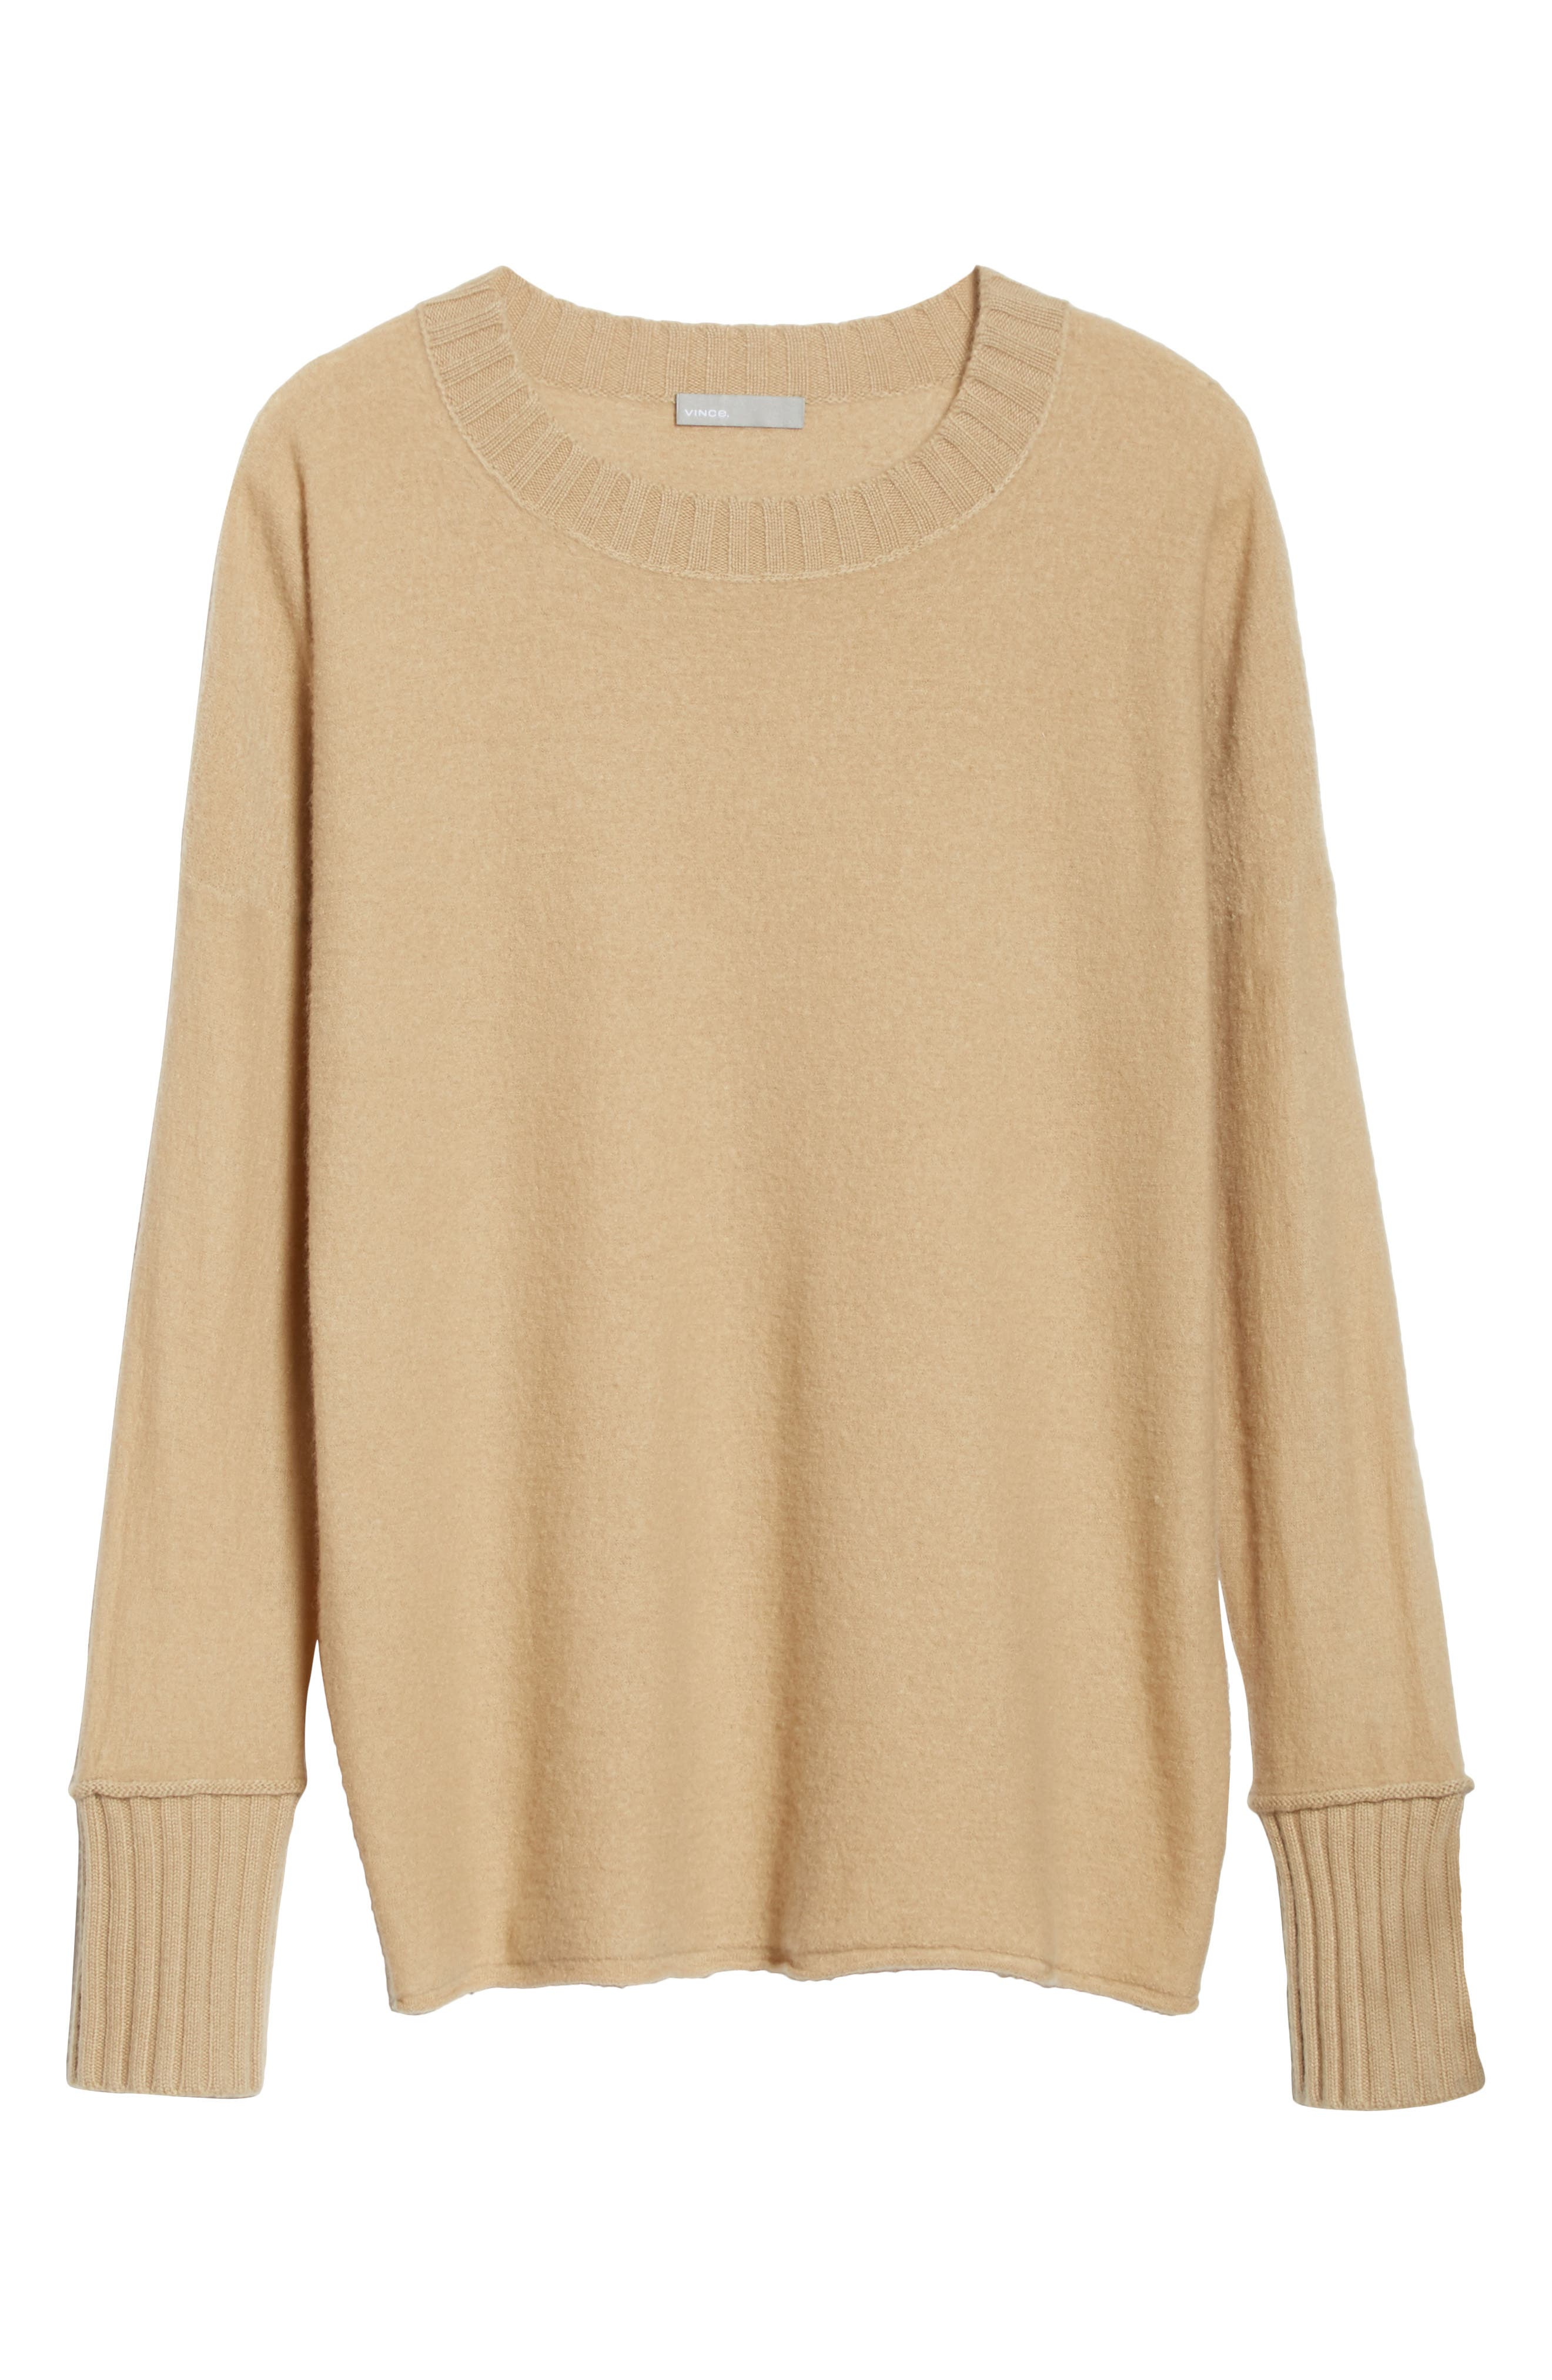 Cashmere Pullover,                             Alternate thumbnail 6, color,                             Camel